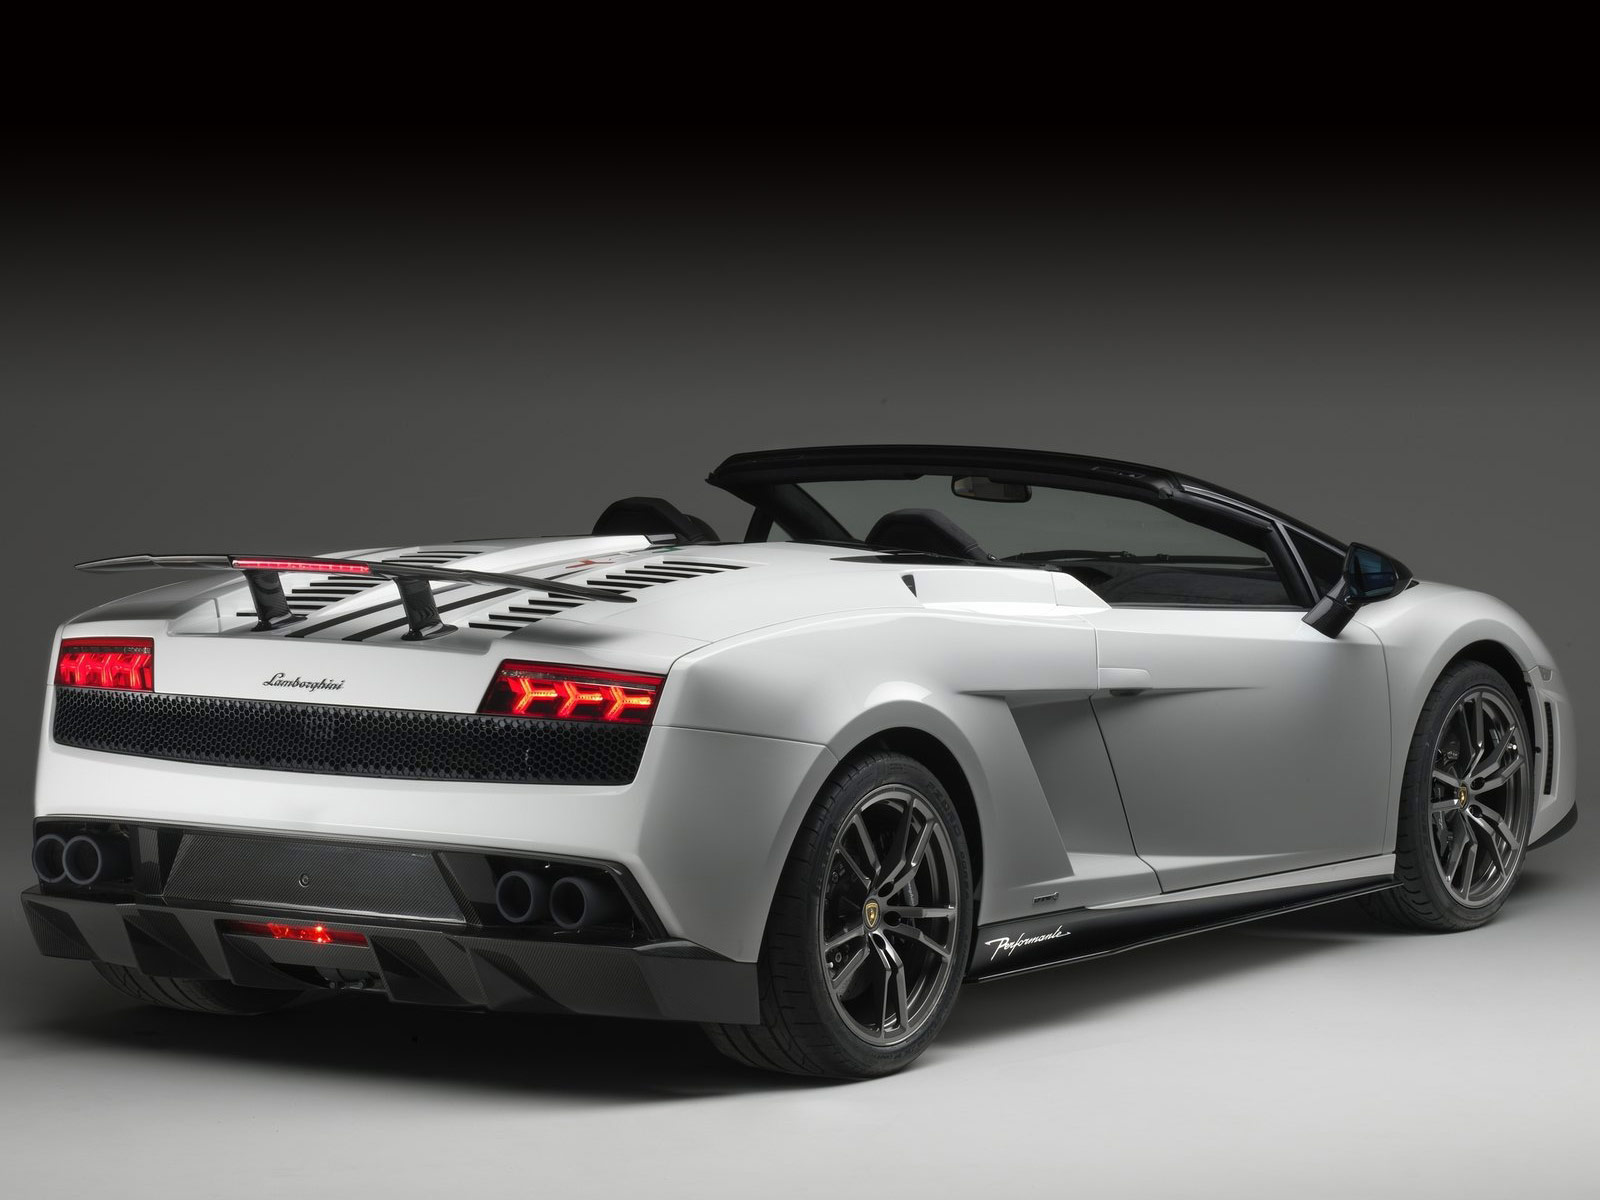 2011 Lamborghini Gallardo Lp570 4 Spyder Performante Autos Post